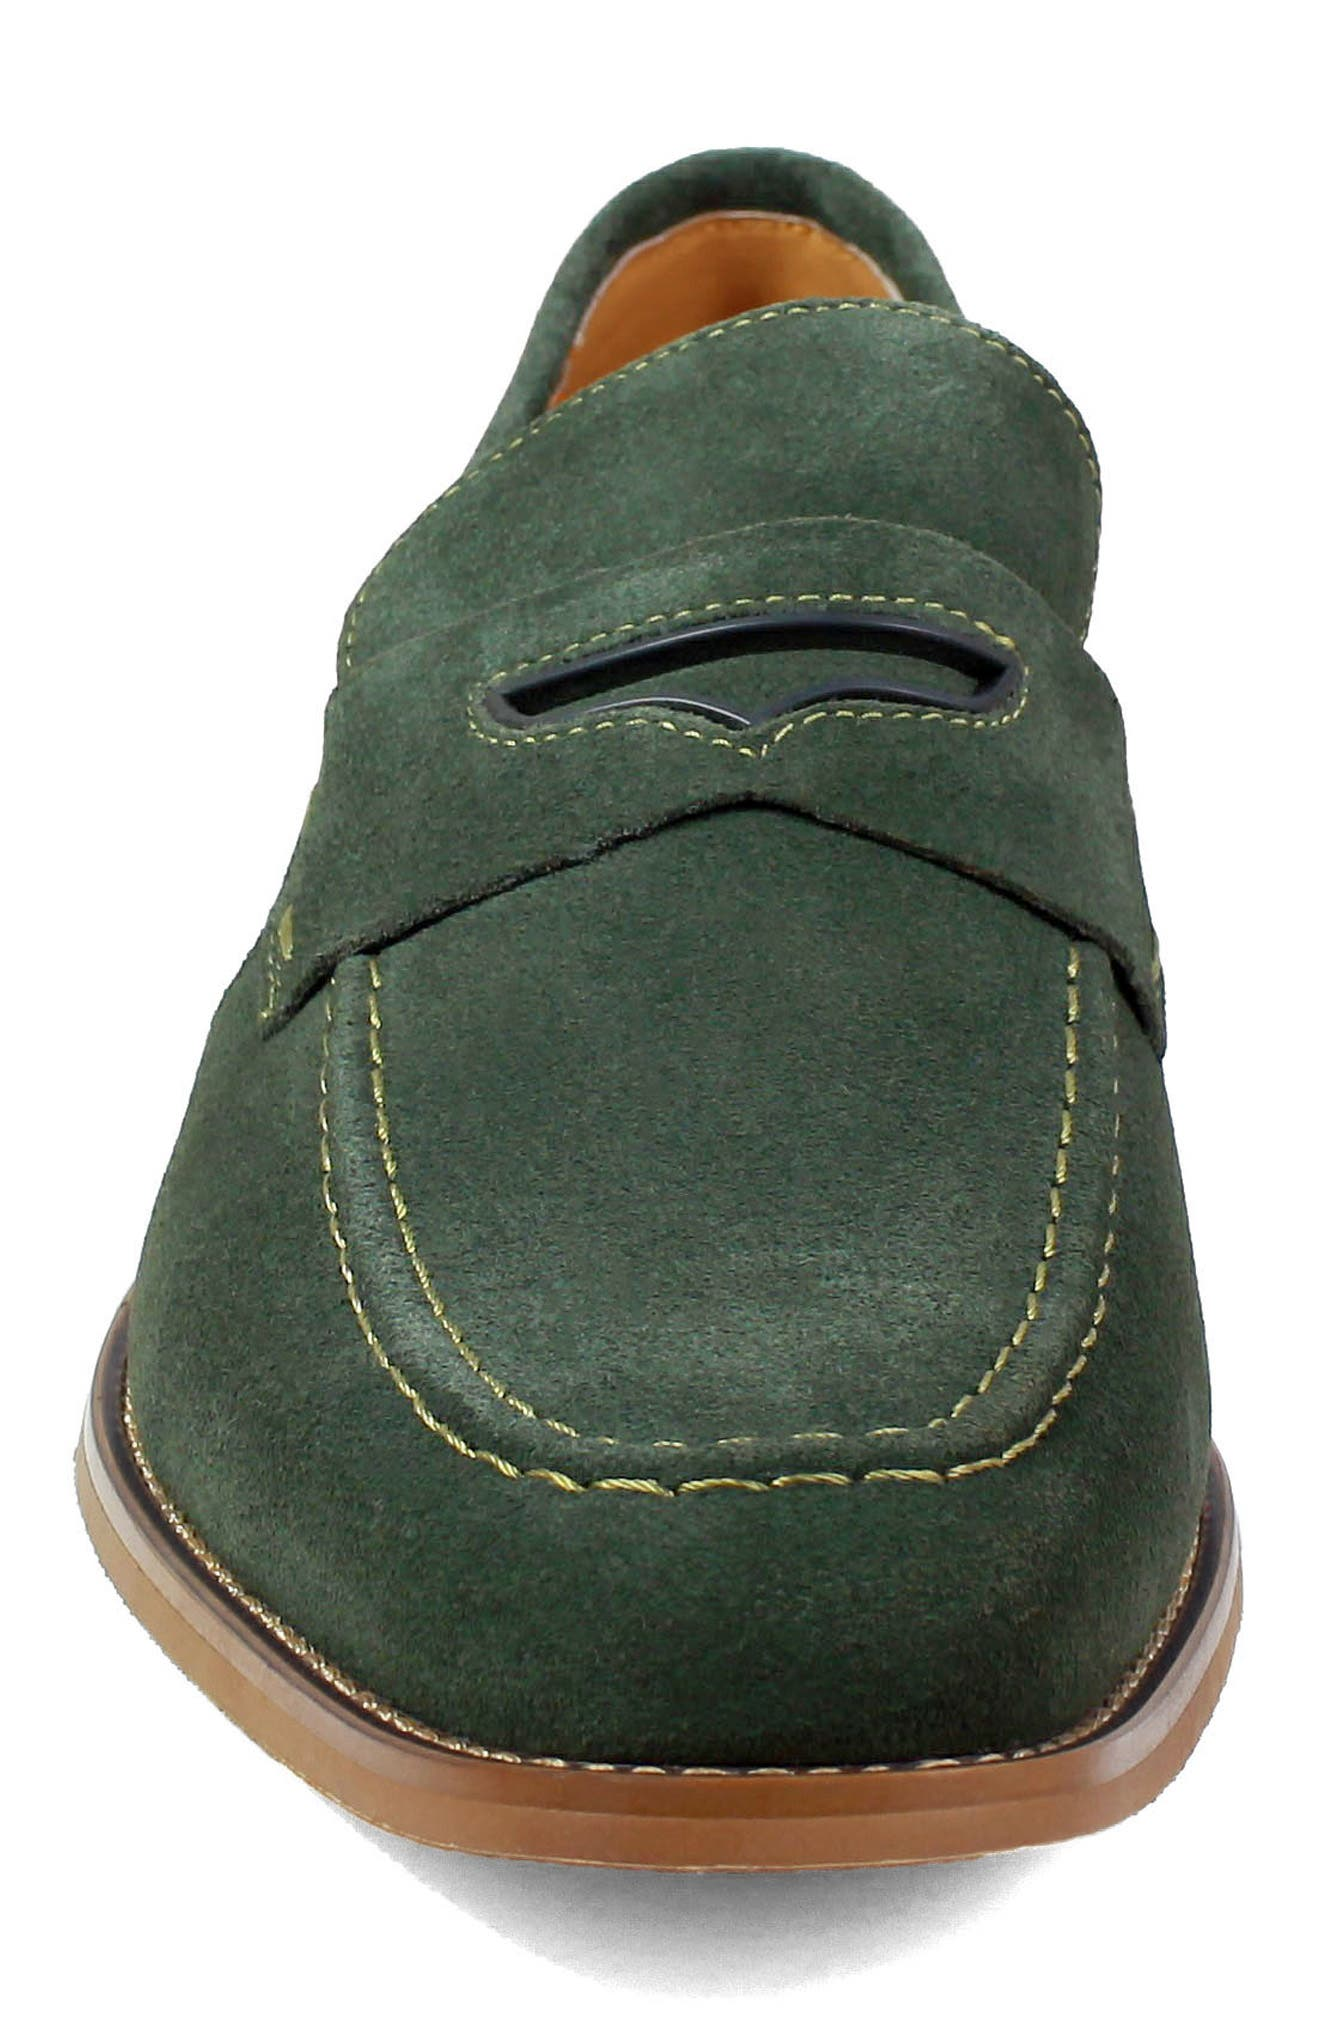 Colfax Apron Toe Penny Loafer,                             Alternate thumbnail 4, color,                             DARK GREEN SUEDE